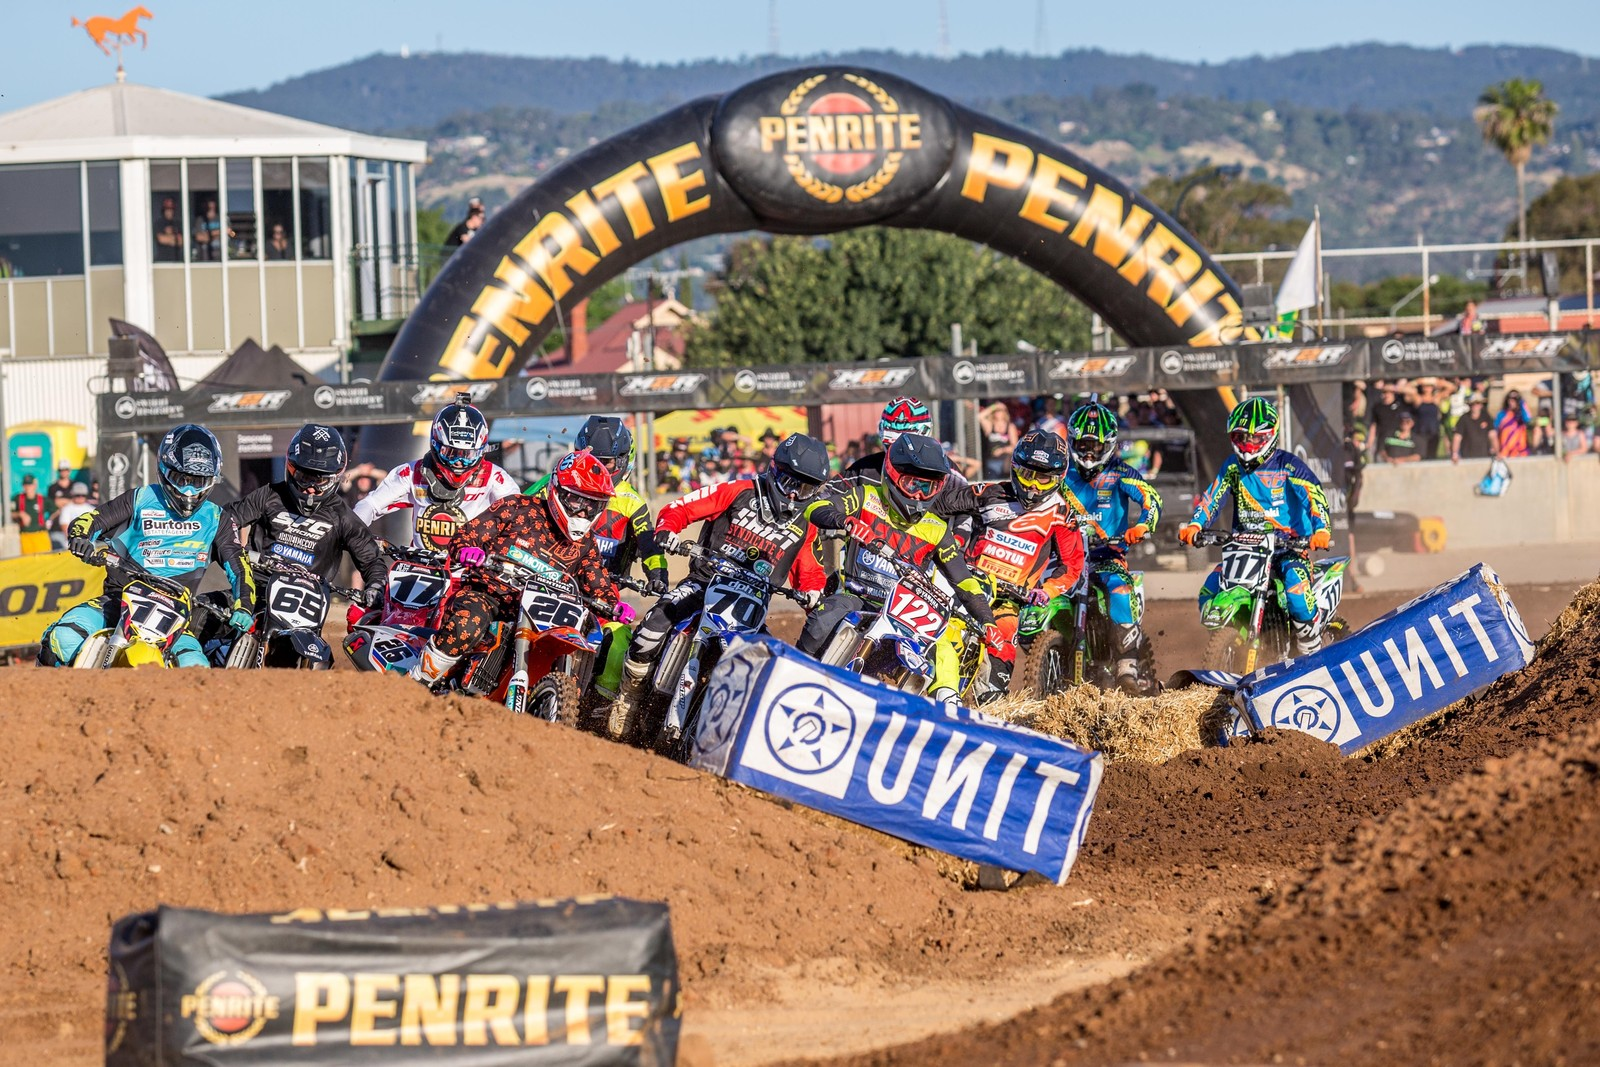 450 heat race - Photo Blast: Australian Supercross Championship from Adelaide - Motocross Pictures - Vital MX